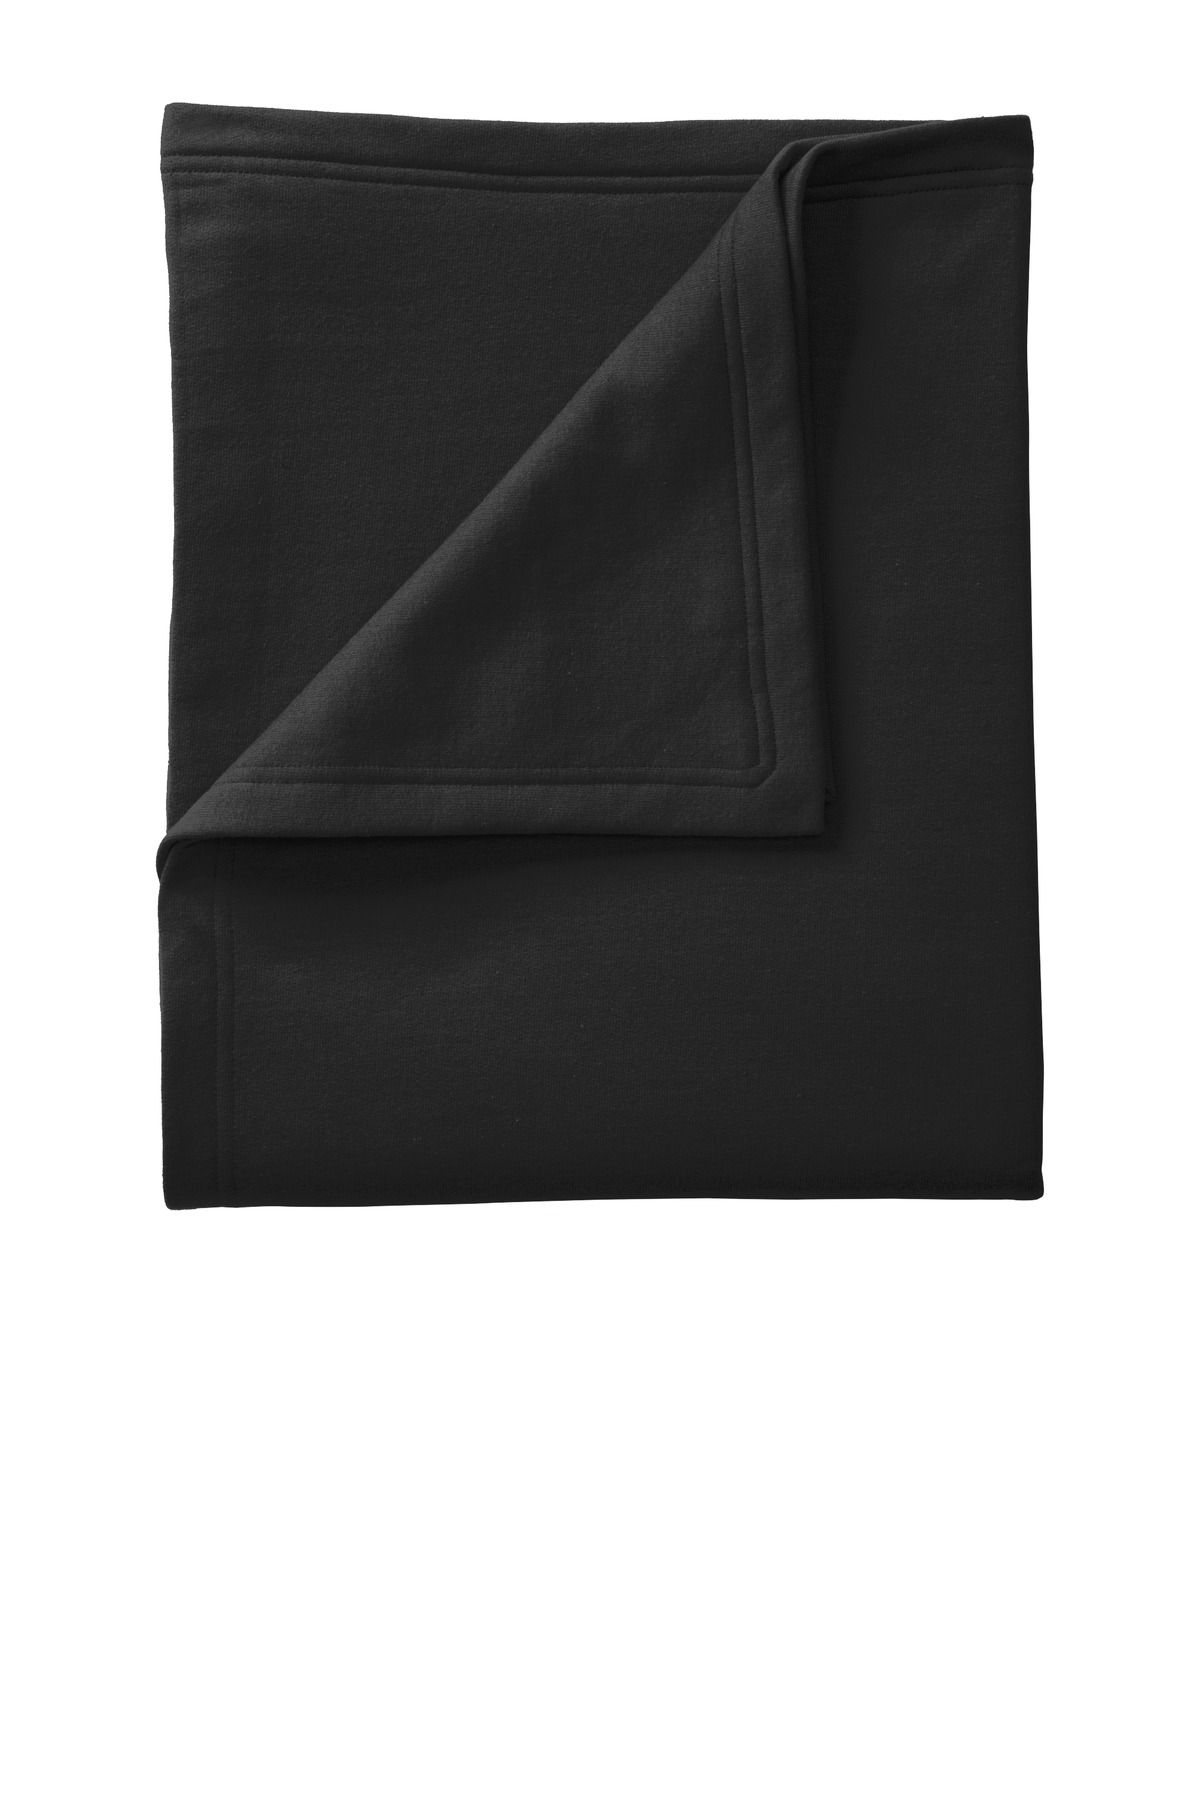 Port & Company ®  Core Fleece Sweatshirt Blanket. BP78 - Jet Black